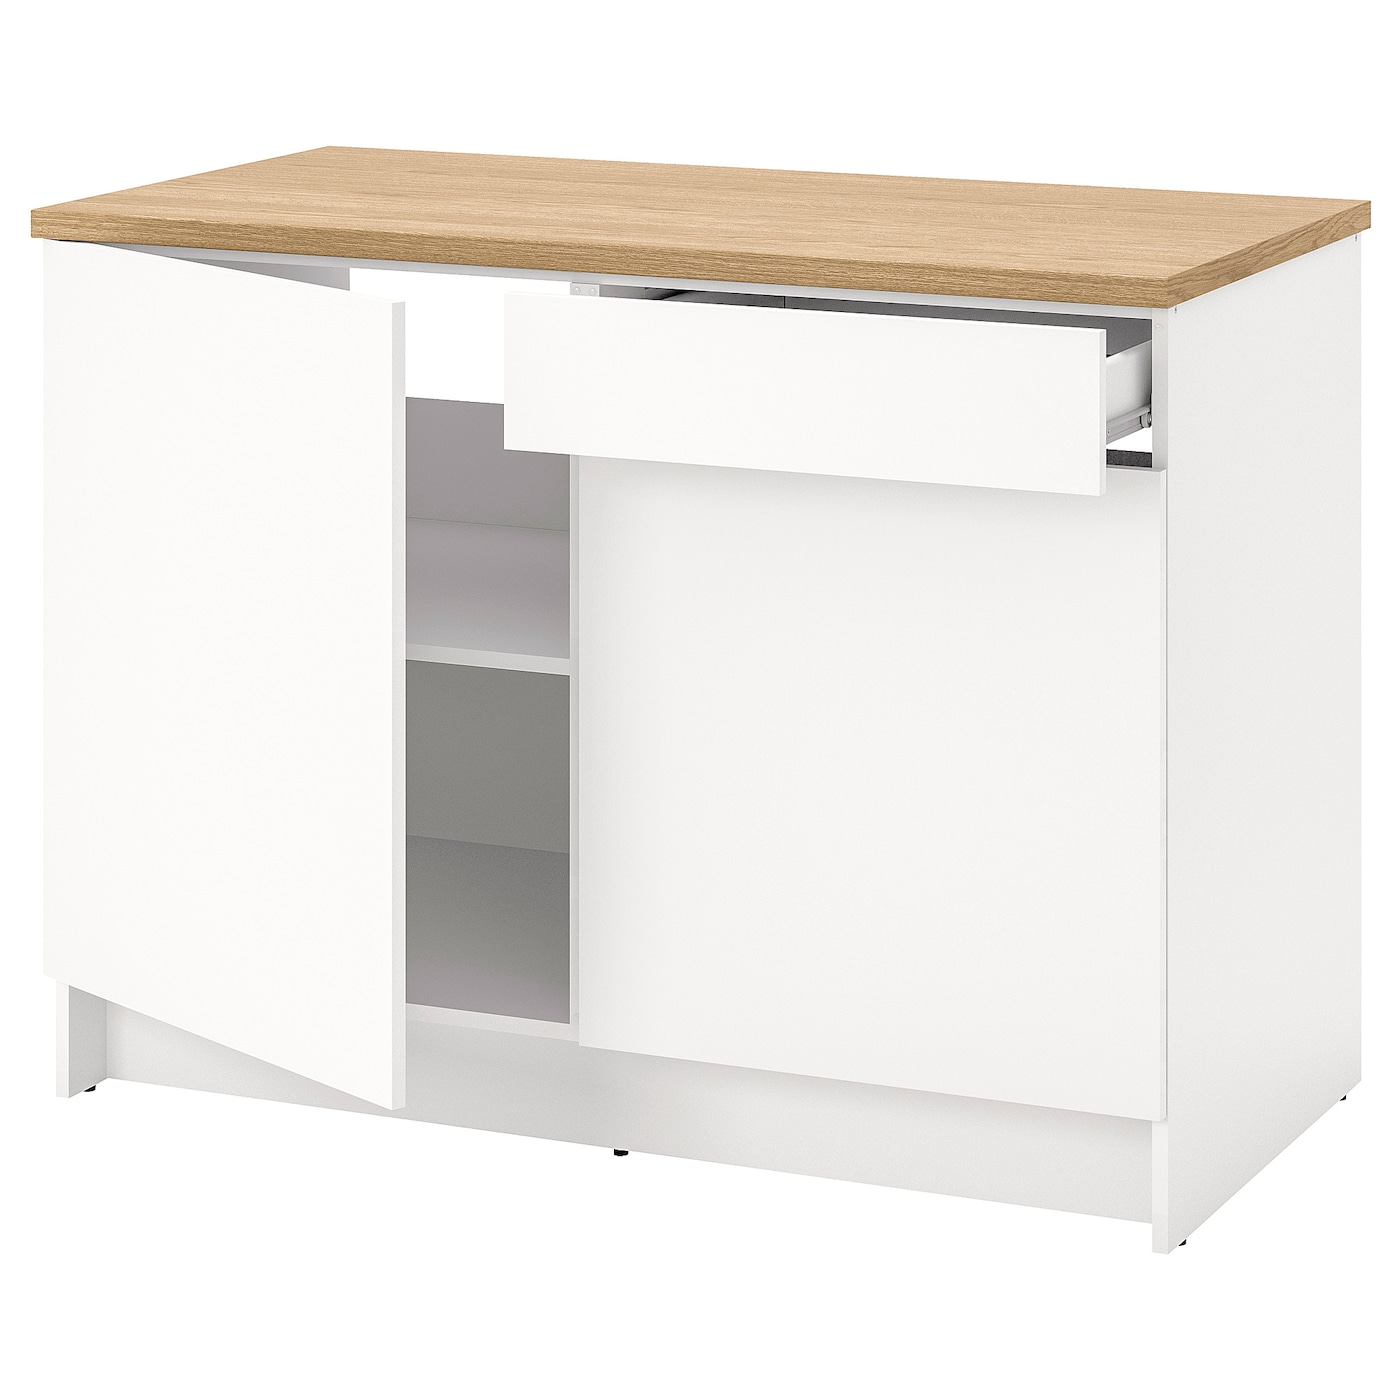 KNOXHULT Base cabinet with doors and drawer - white 11 cm